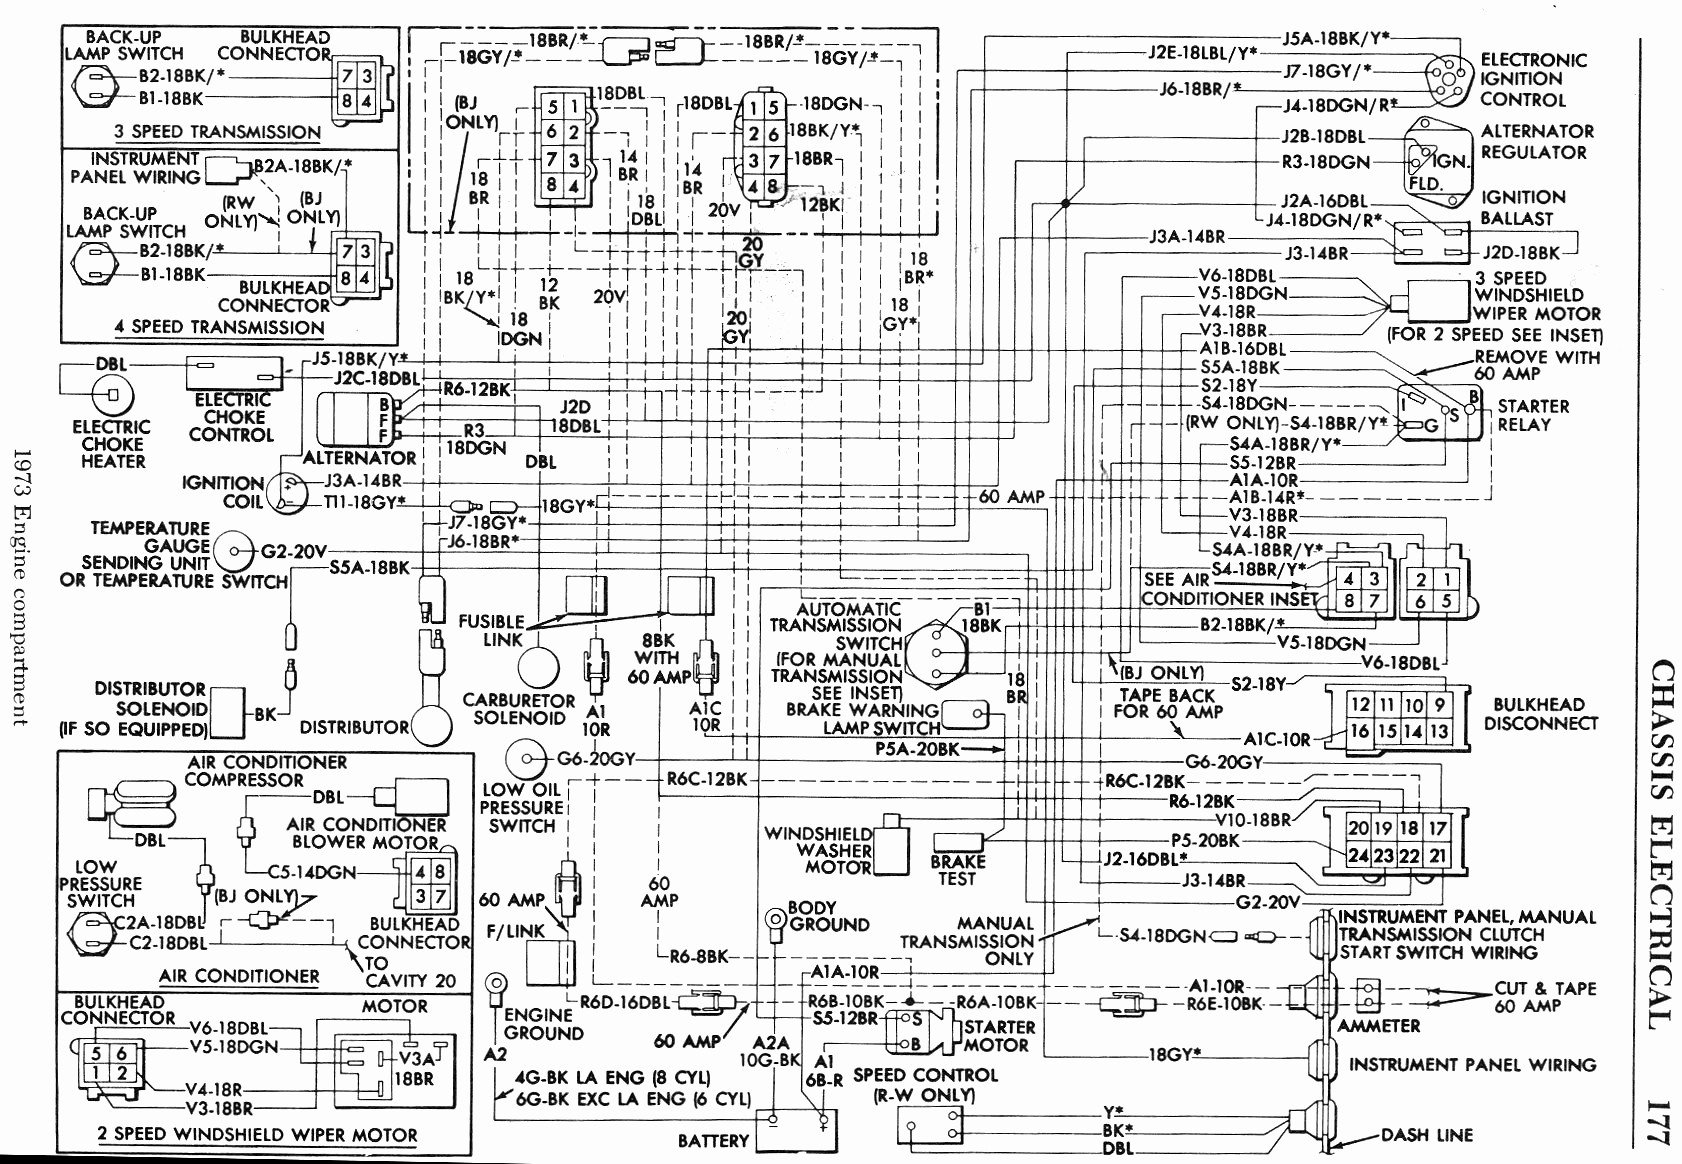 1971 b body wiring diagram schematic b body wiring harness